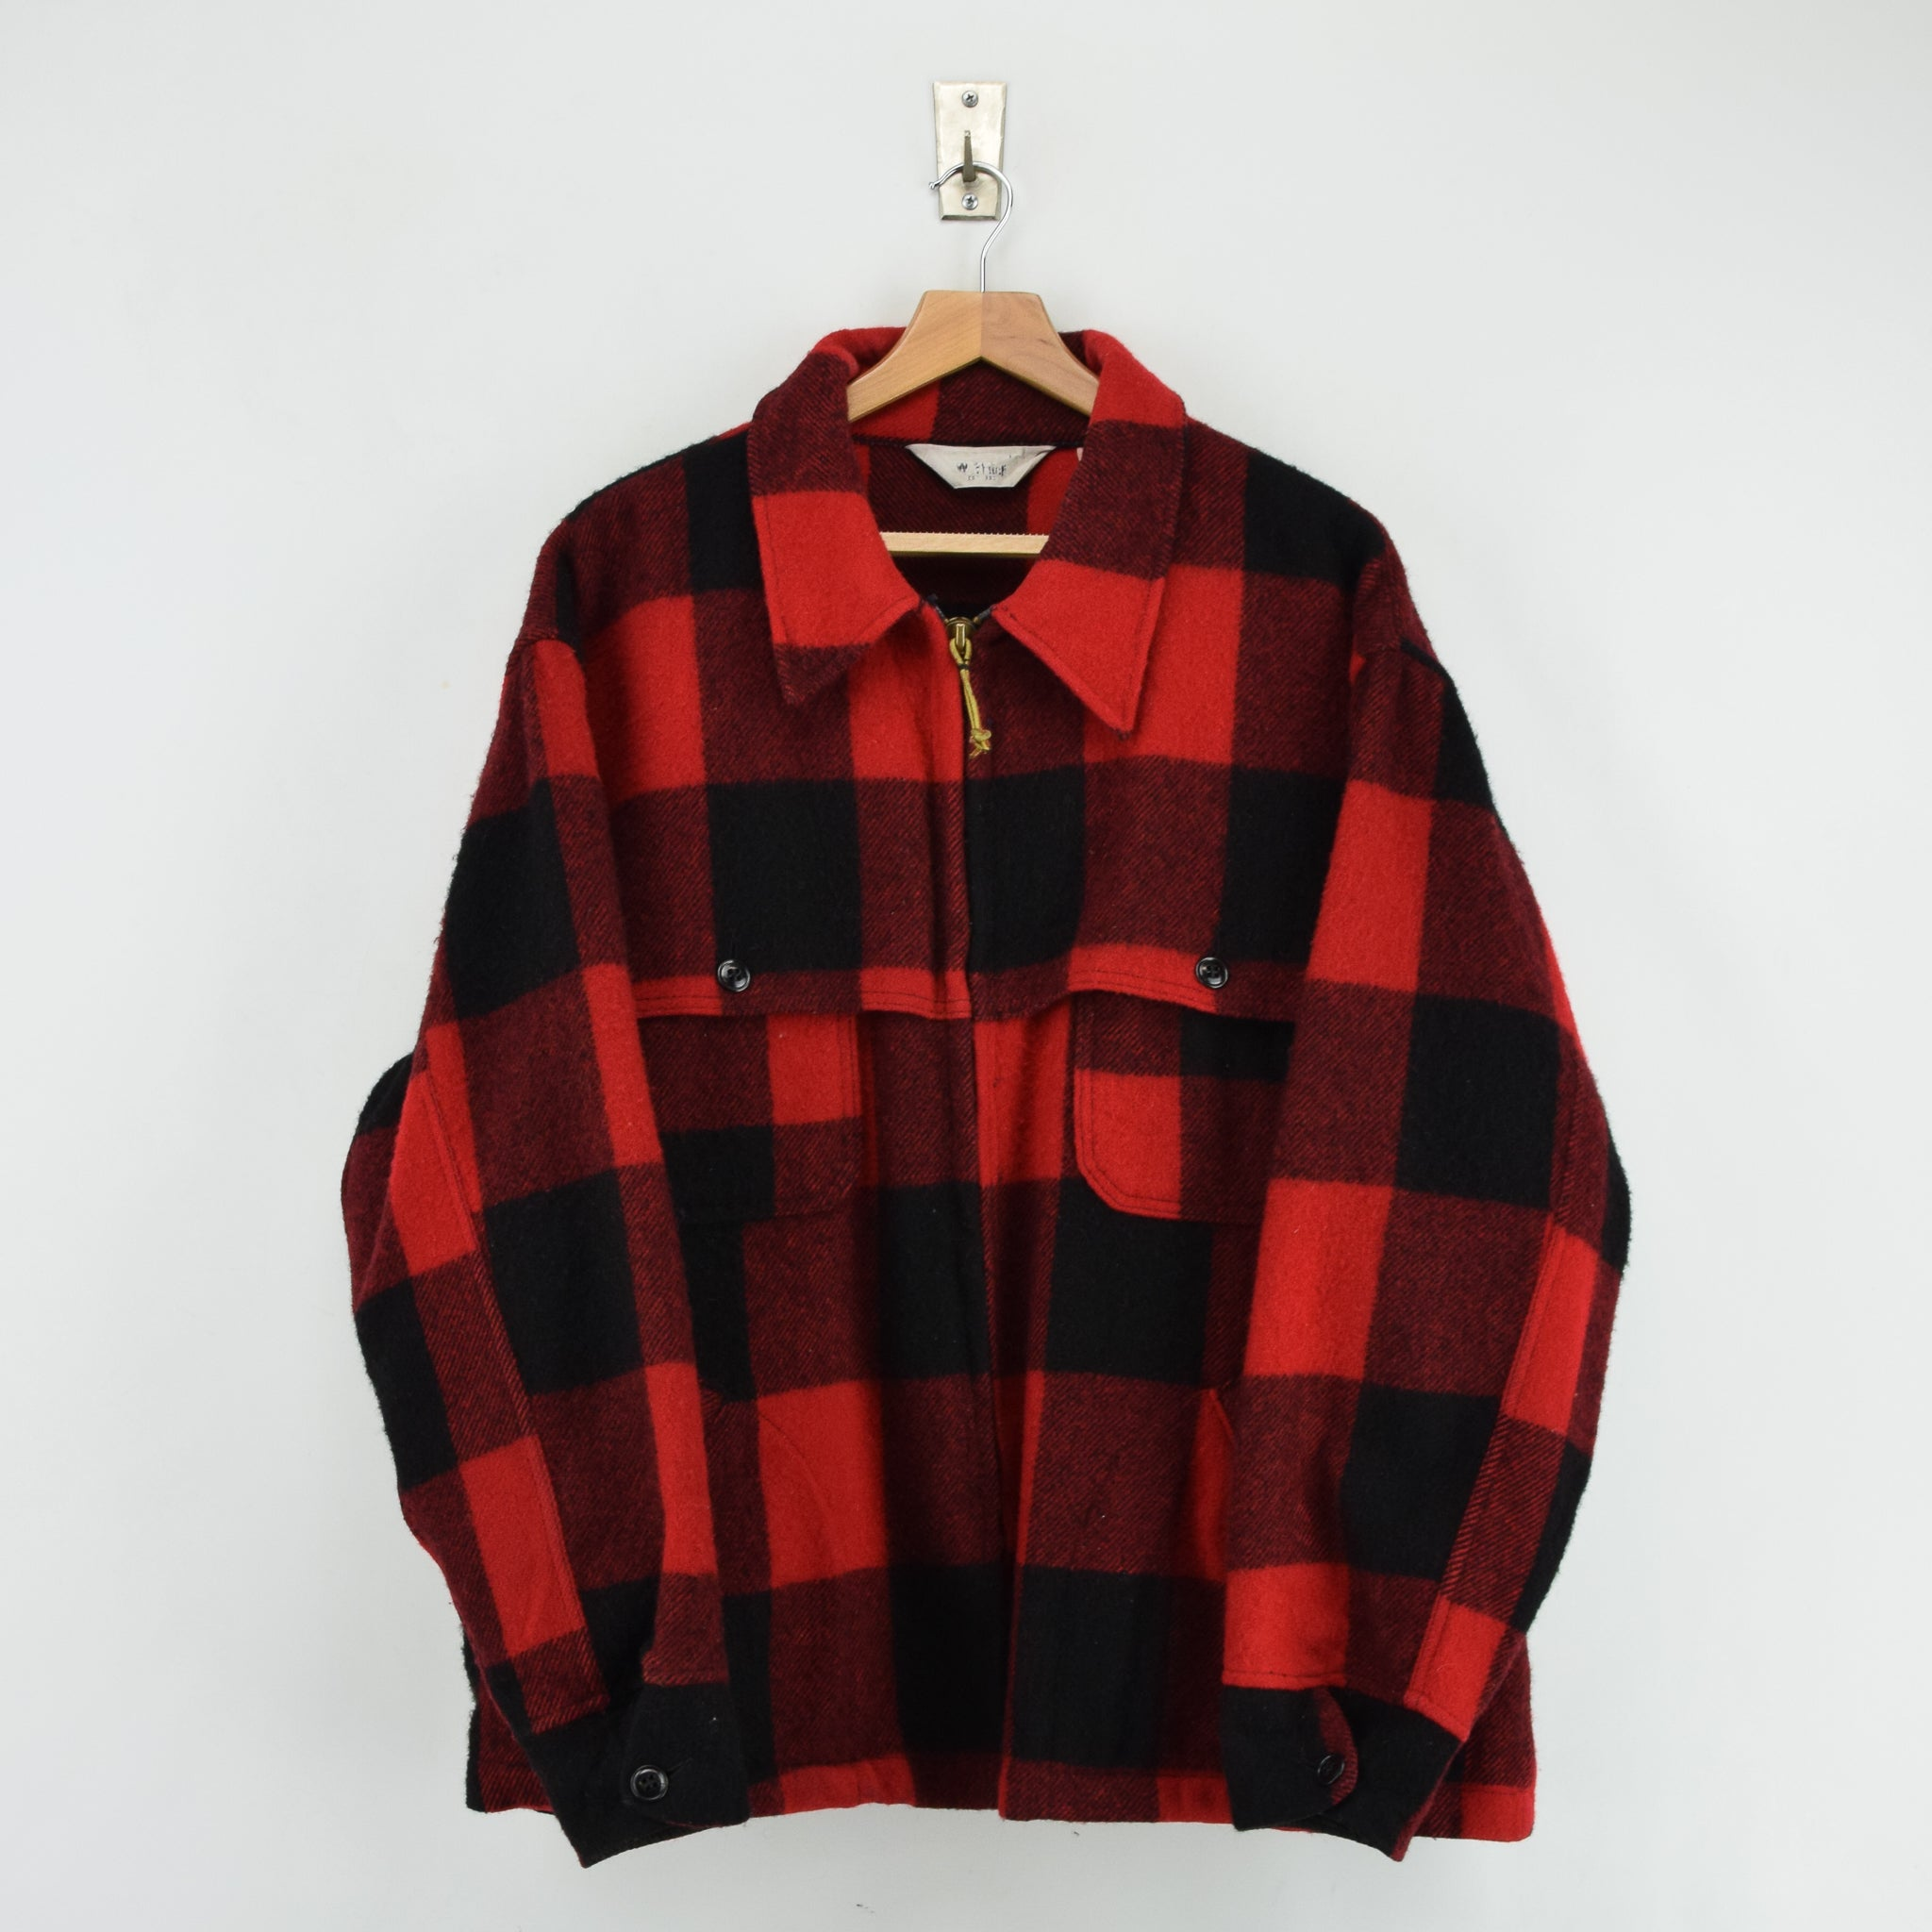 Vintage 70s Woolrich Buffalo Plaid Hunting Mackinaw Shirt Jacket Made in USA XXL front